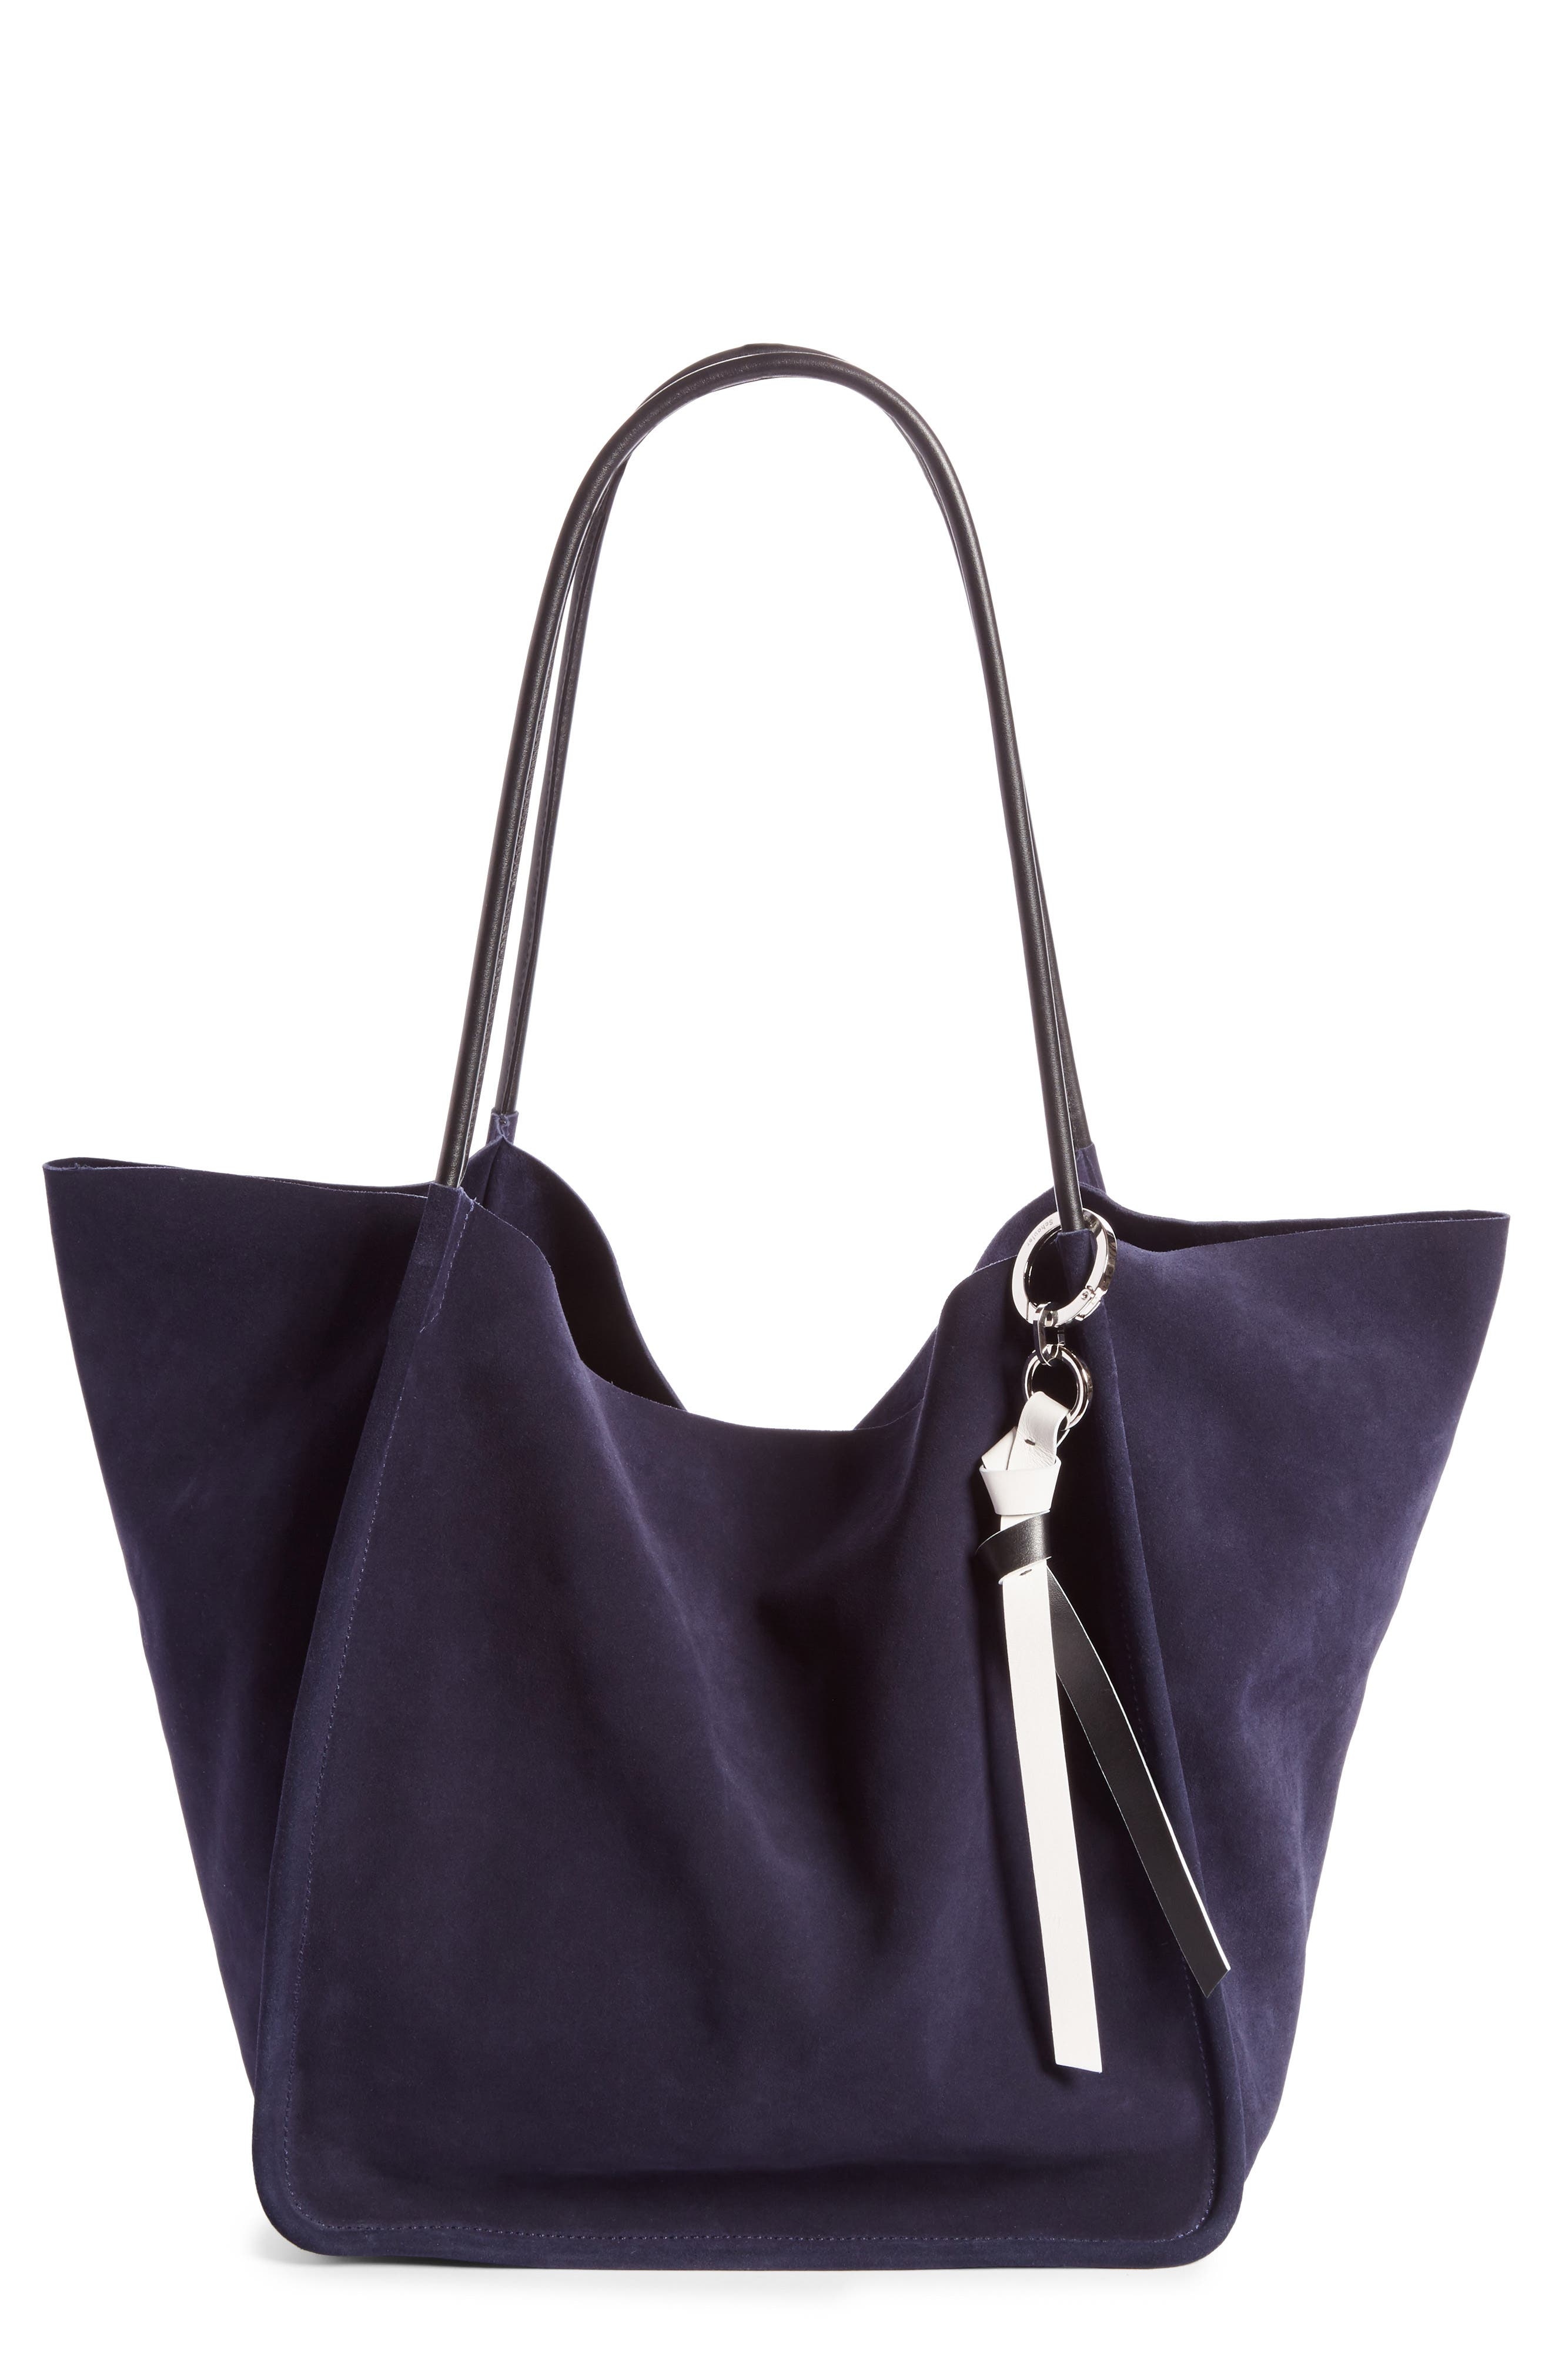 Extra-Large Designer Totes for Women | Nordstrom